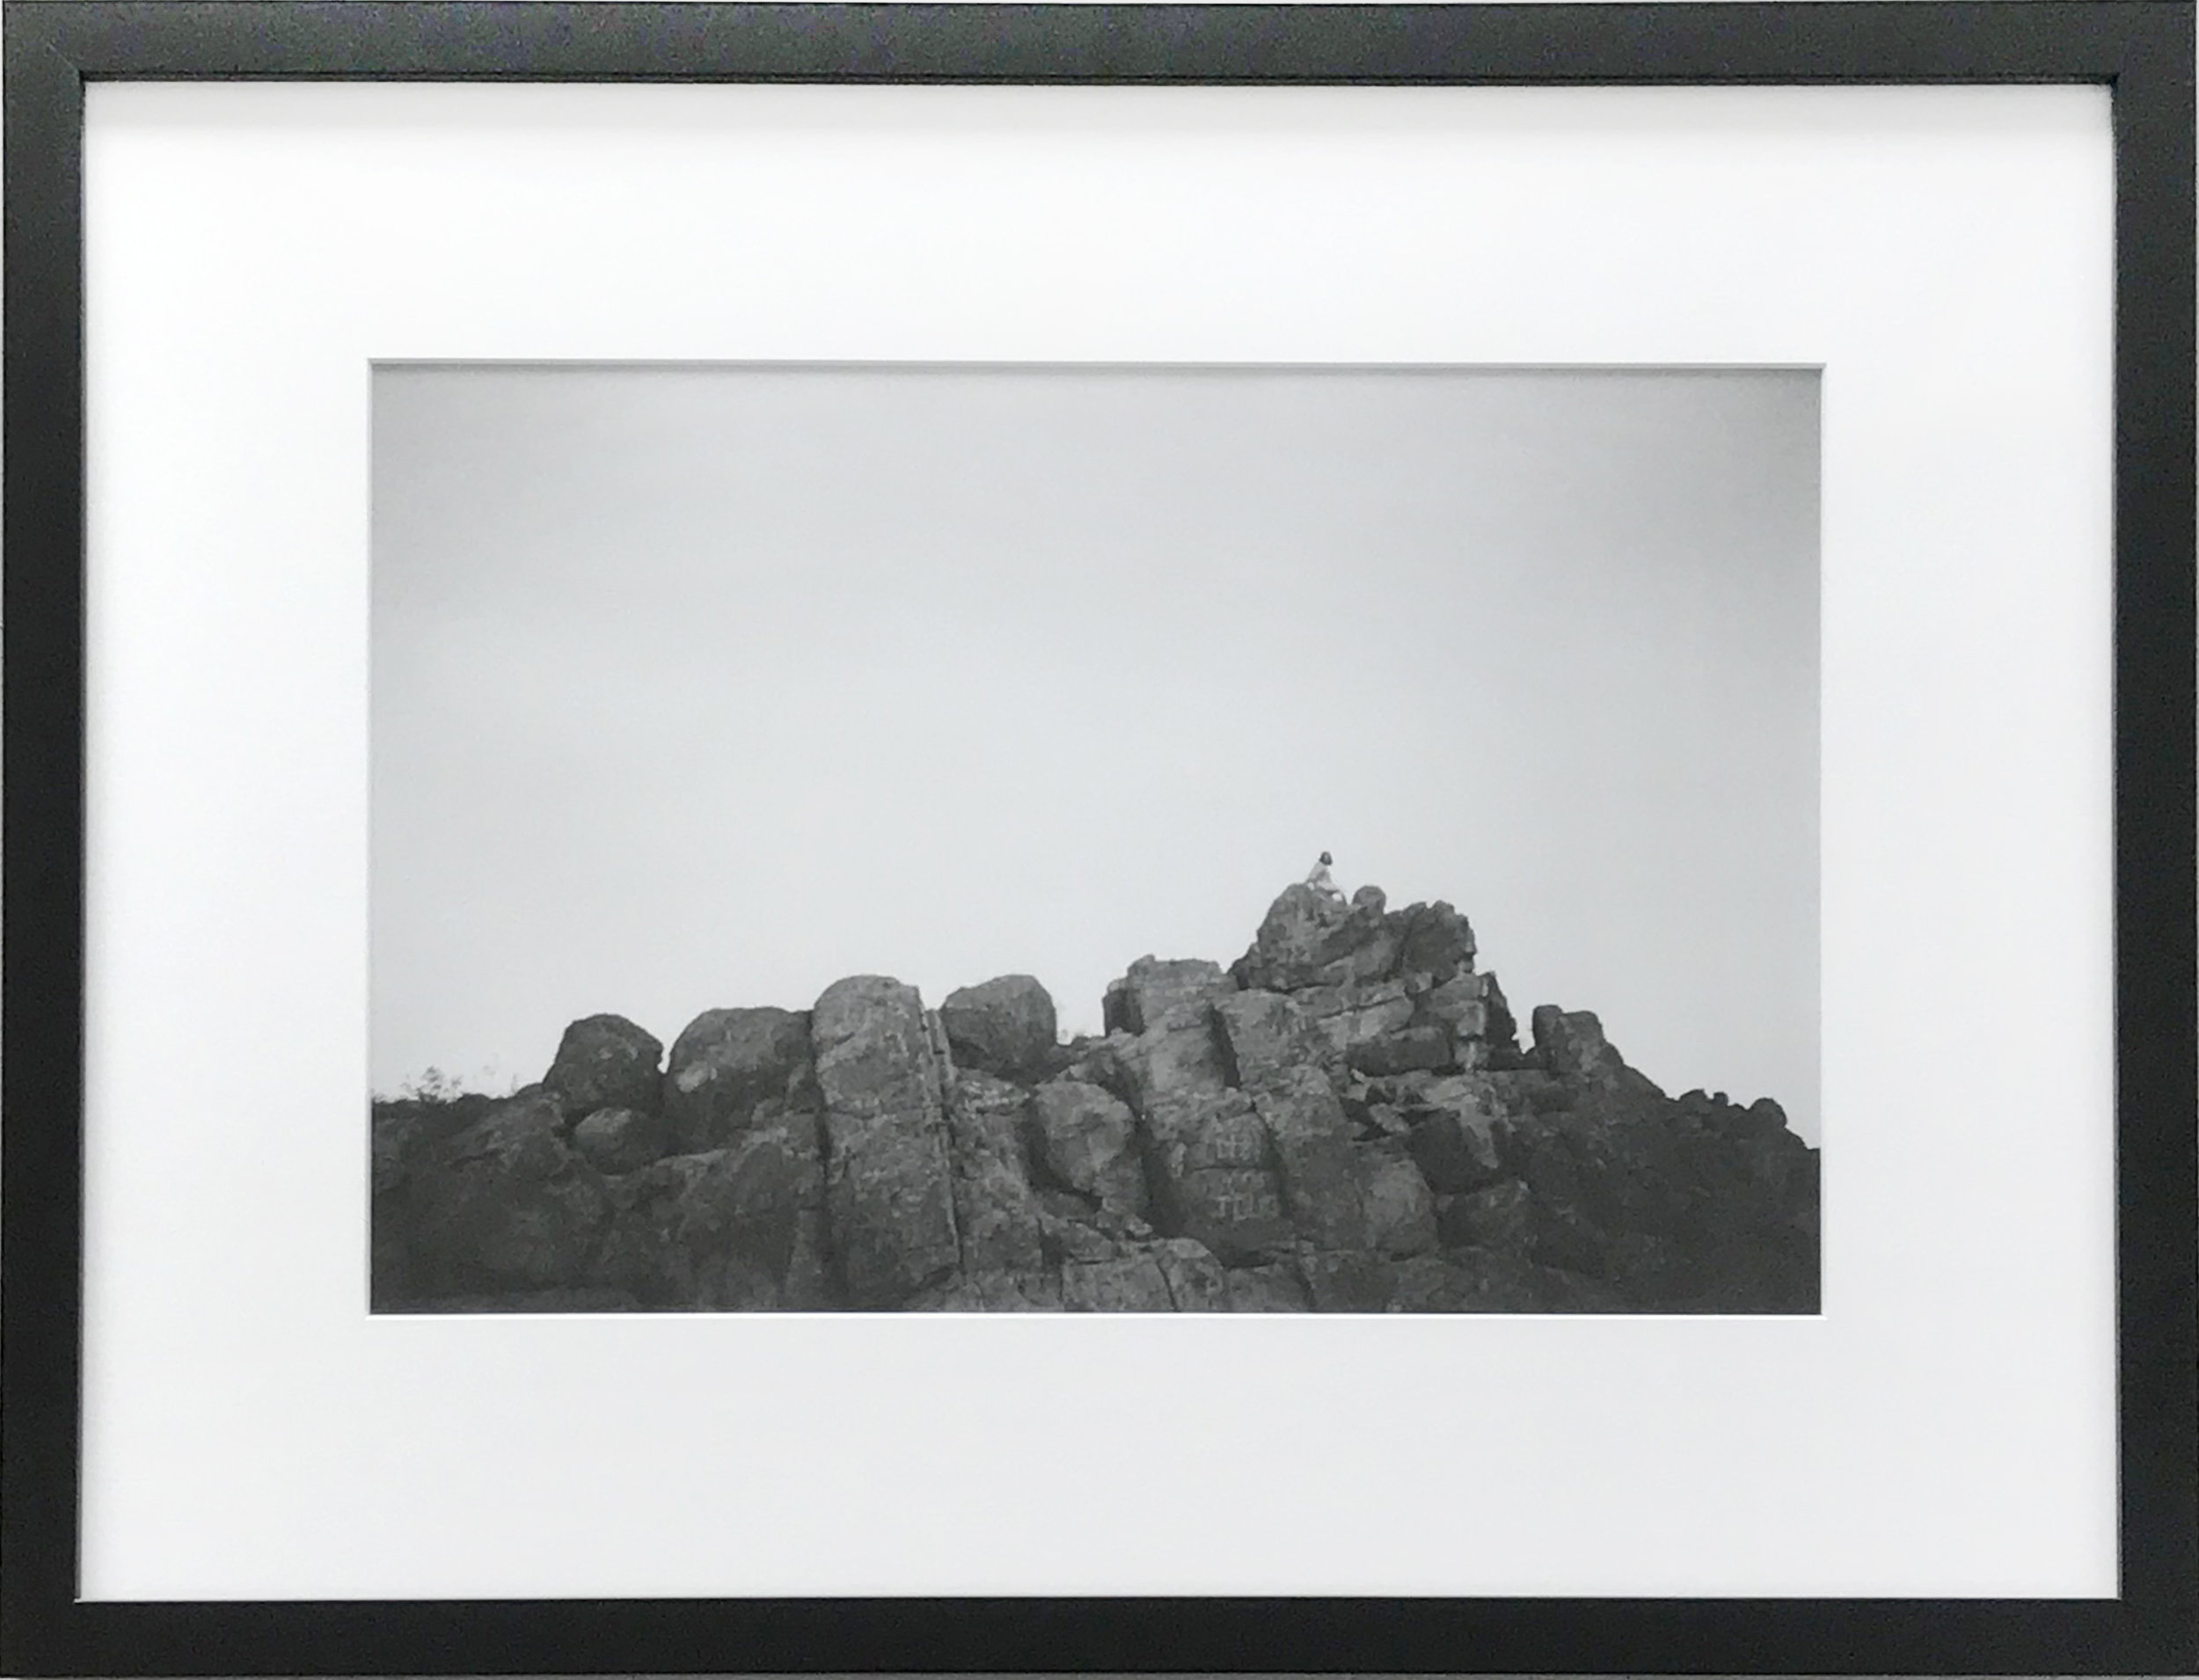 - Olana FlynnJoshua Tree, CA.2018Archival pigment print in museum frame10 x 15 inches